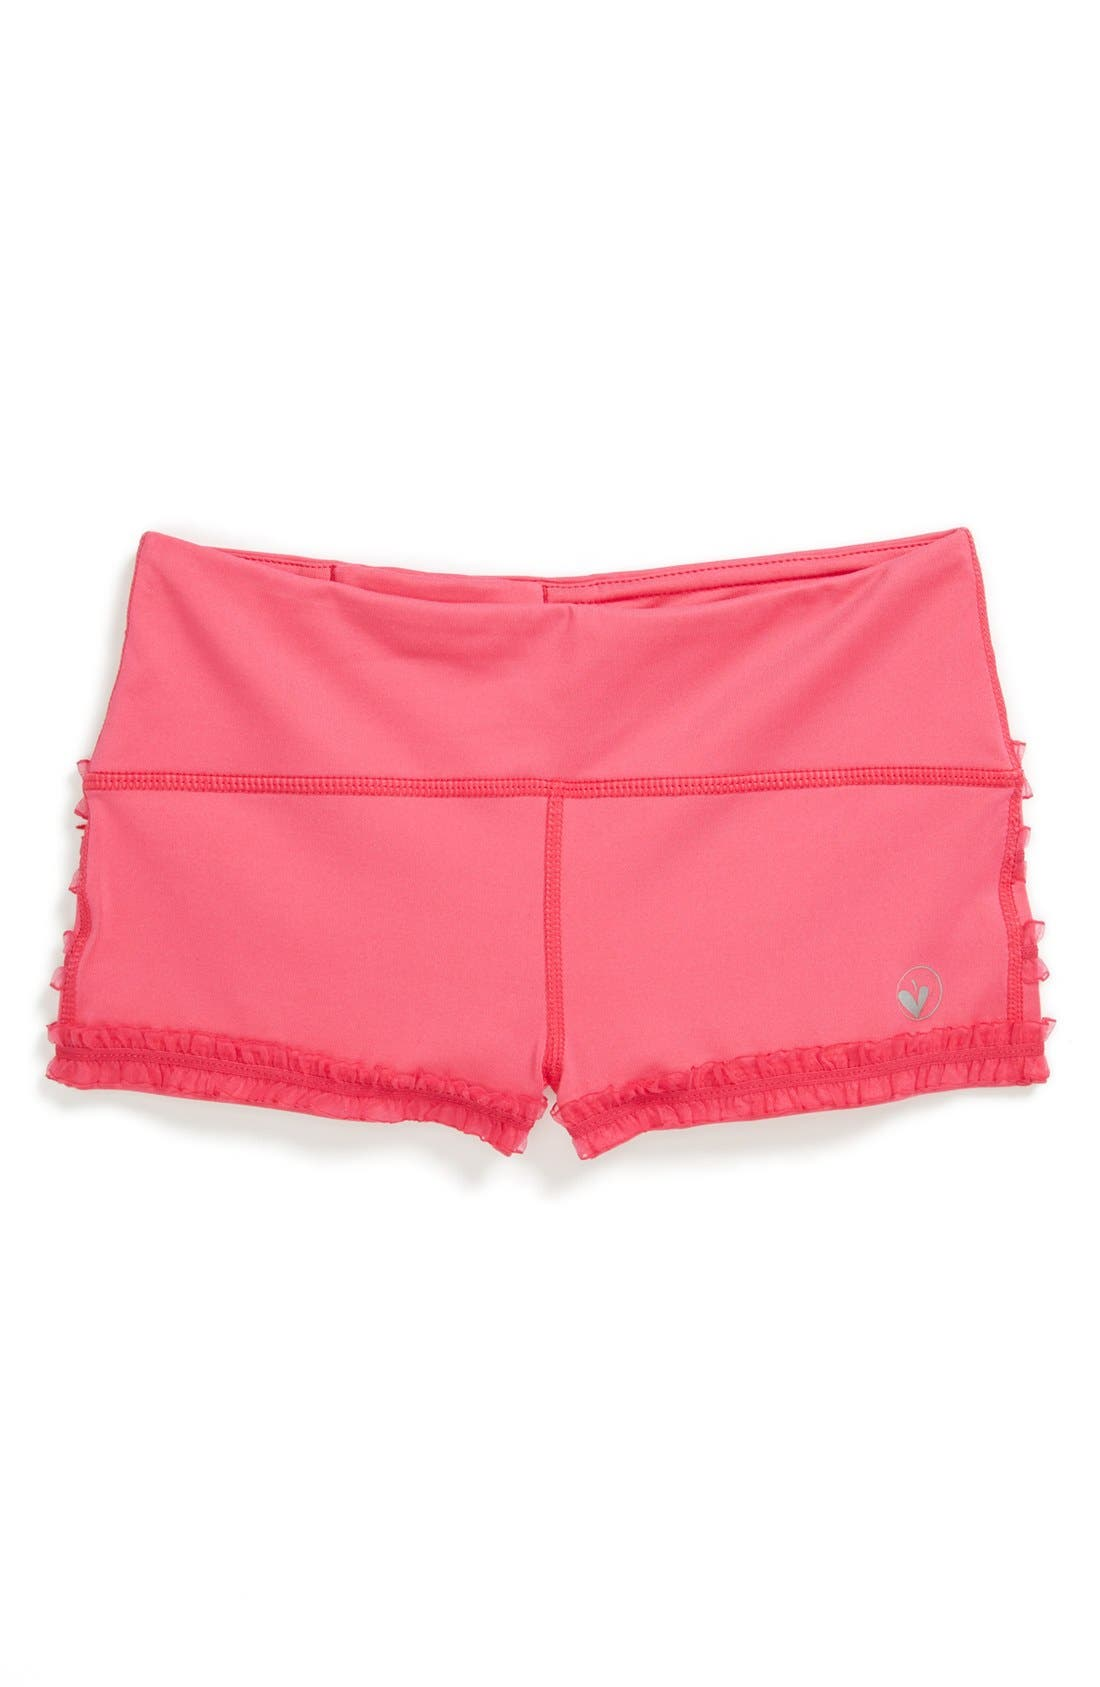 Alternate Image 1 Selected - Limeapple 'Dance' Ruffled Mini Shorts (Big Girls)